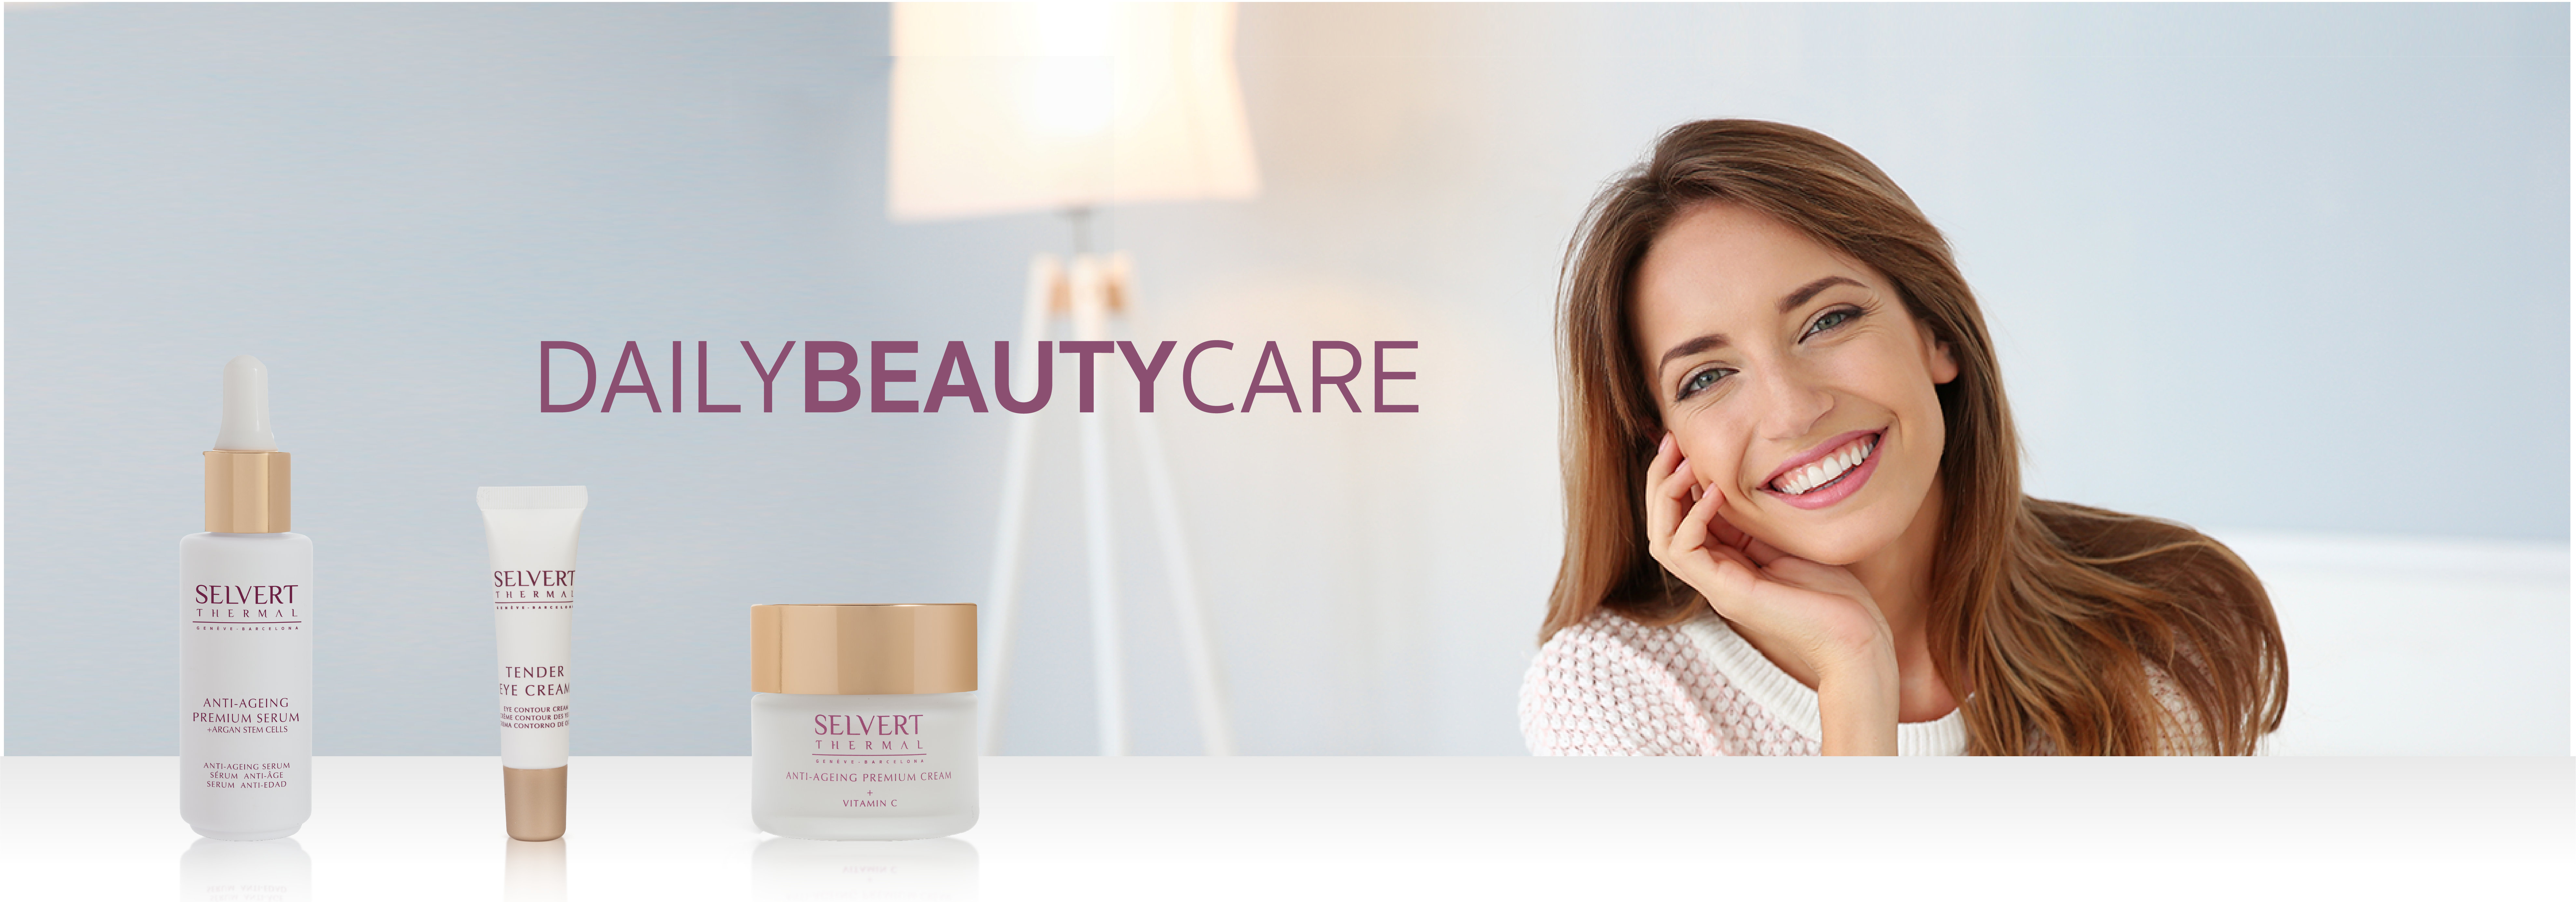 "DAILY BEAUTY CARE <h4 style=""text-align: center;"">BIOSACCHARIDES. PERFECT FOR SENSITIVE SKIN</h4>